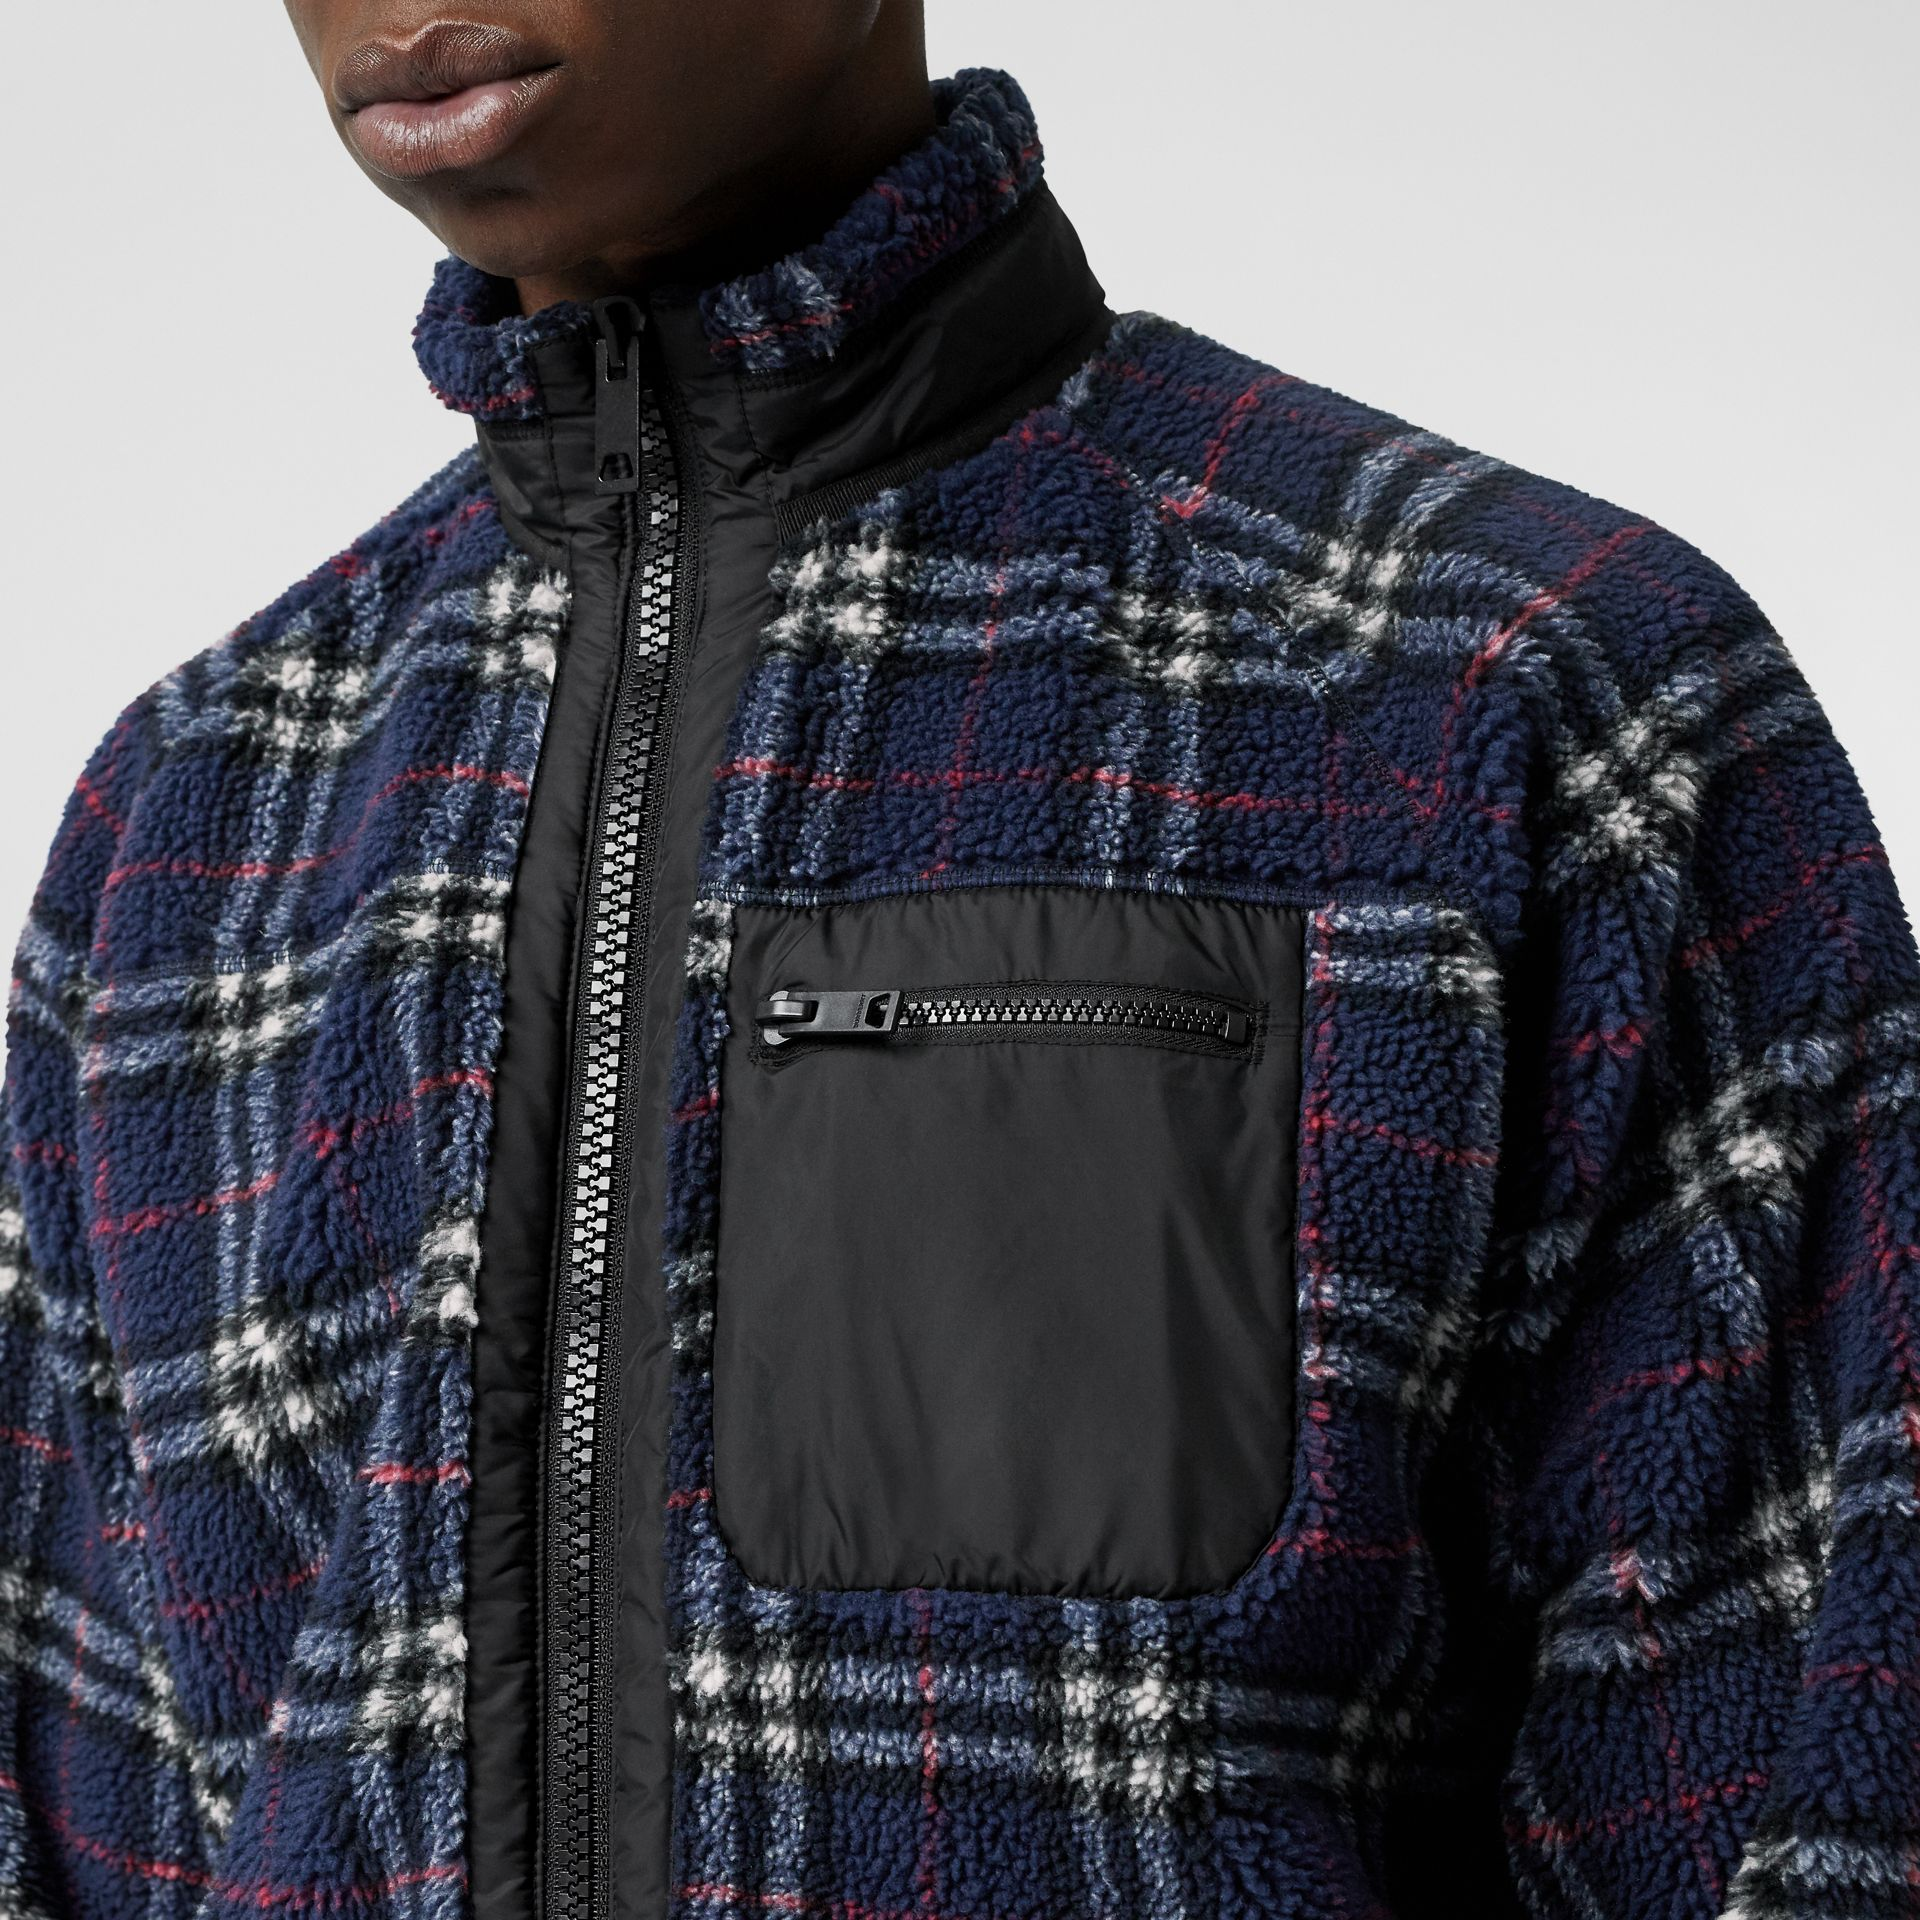 Vintage Check Faux Shearling Jacket in Navy - Men | Burberry - gallery image 1